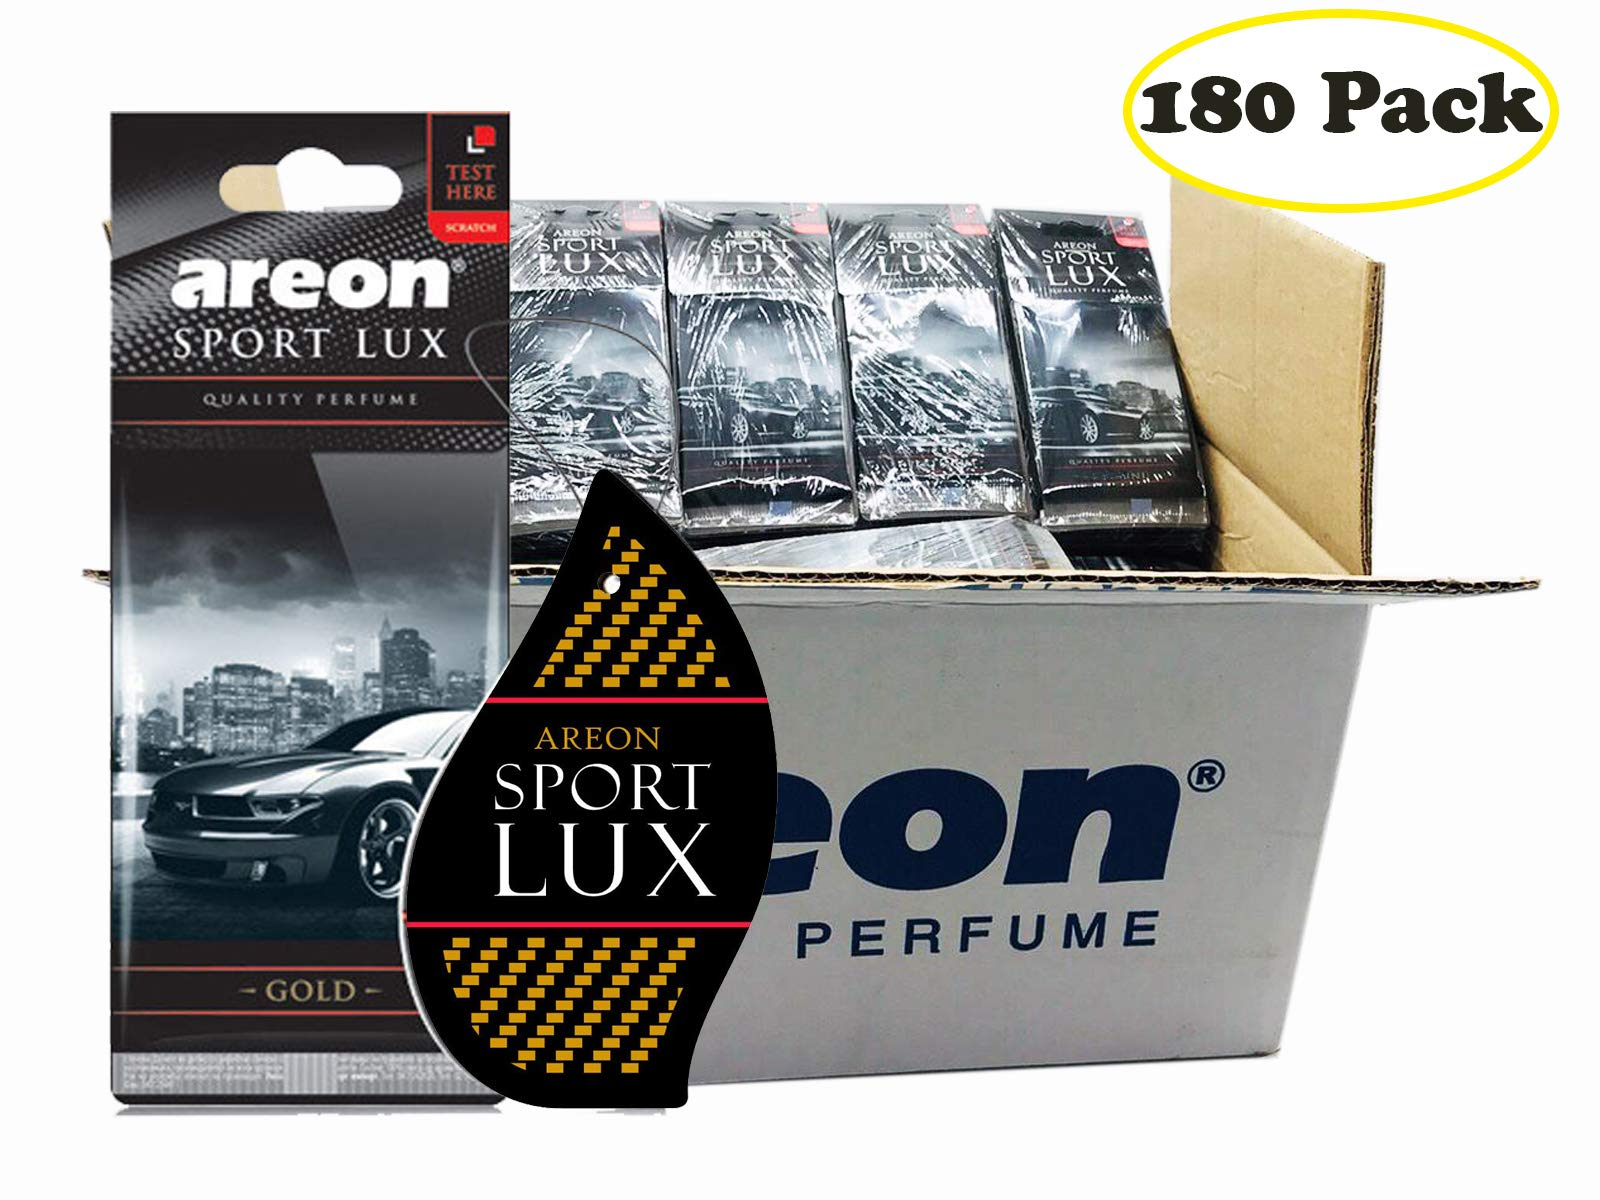 Areon Sport LUX Quality Perfume/Cologne Cardboard Car & Home Air Freshener (180, Gold)